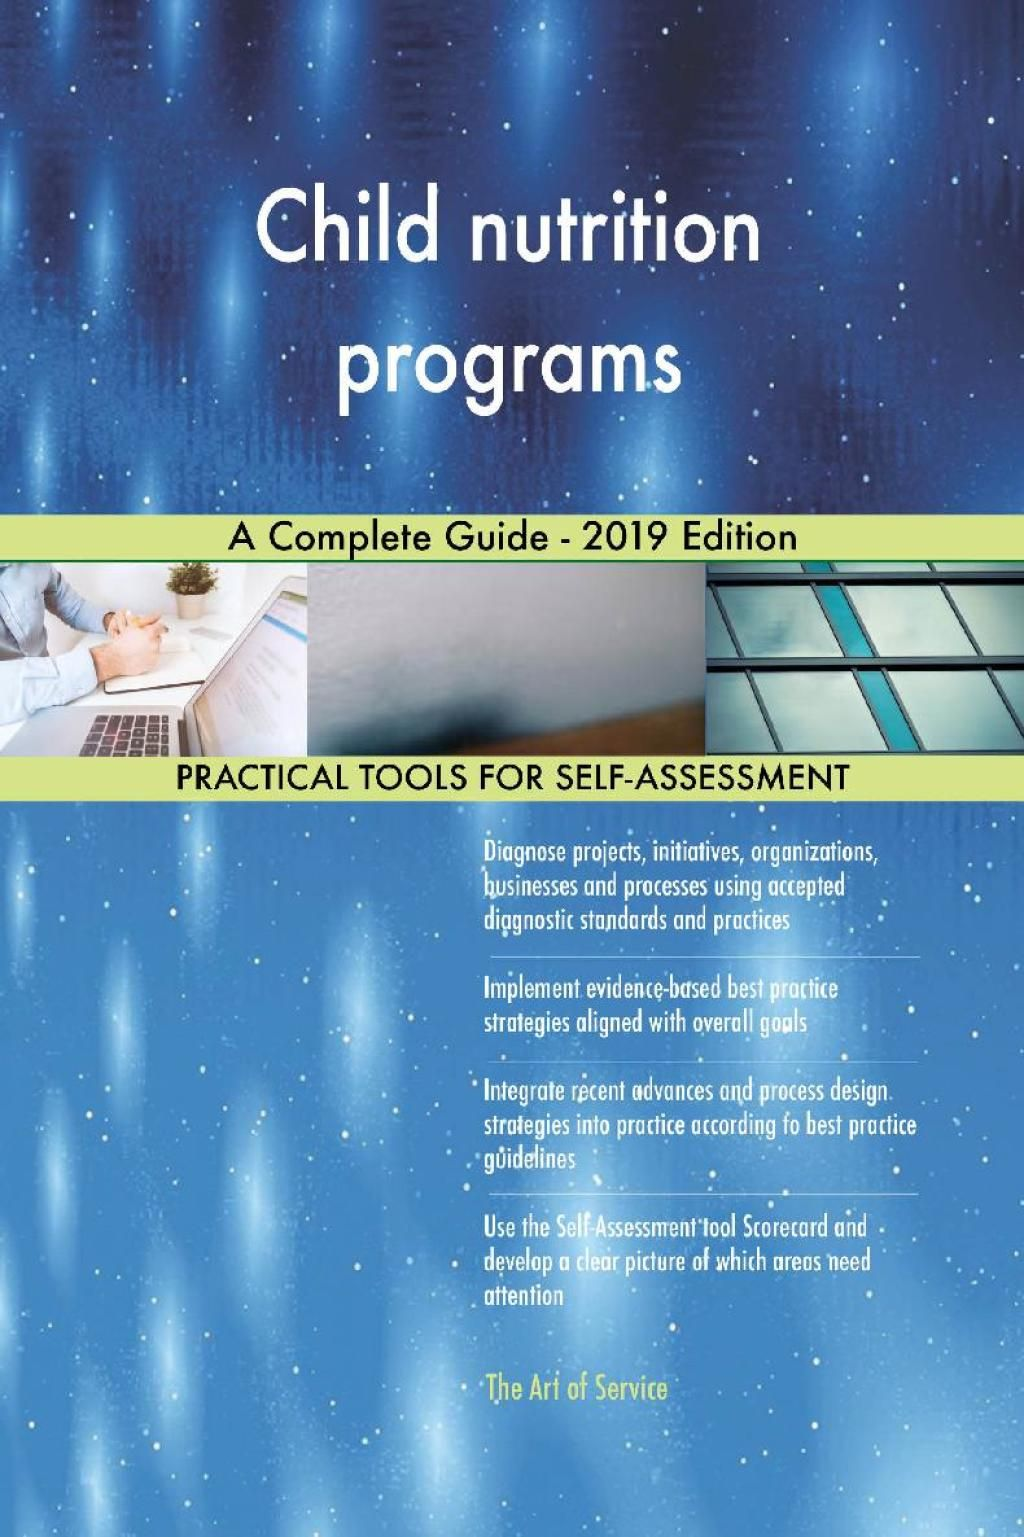 Child nutrition programs A Complete Guide - 2019 Edition (eBook) #childnutrition